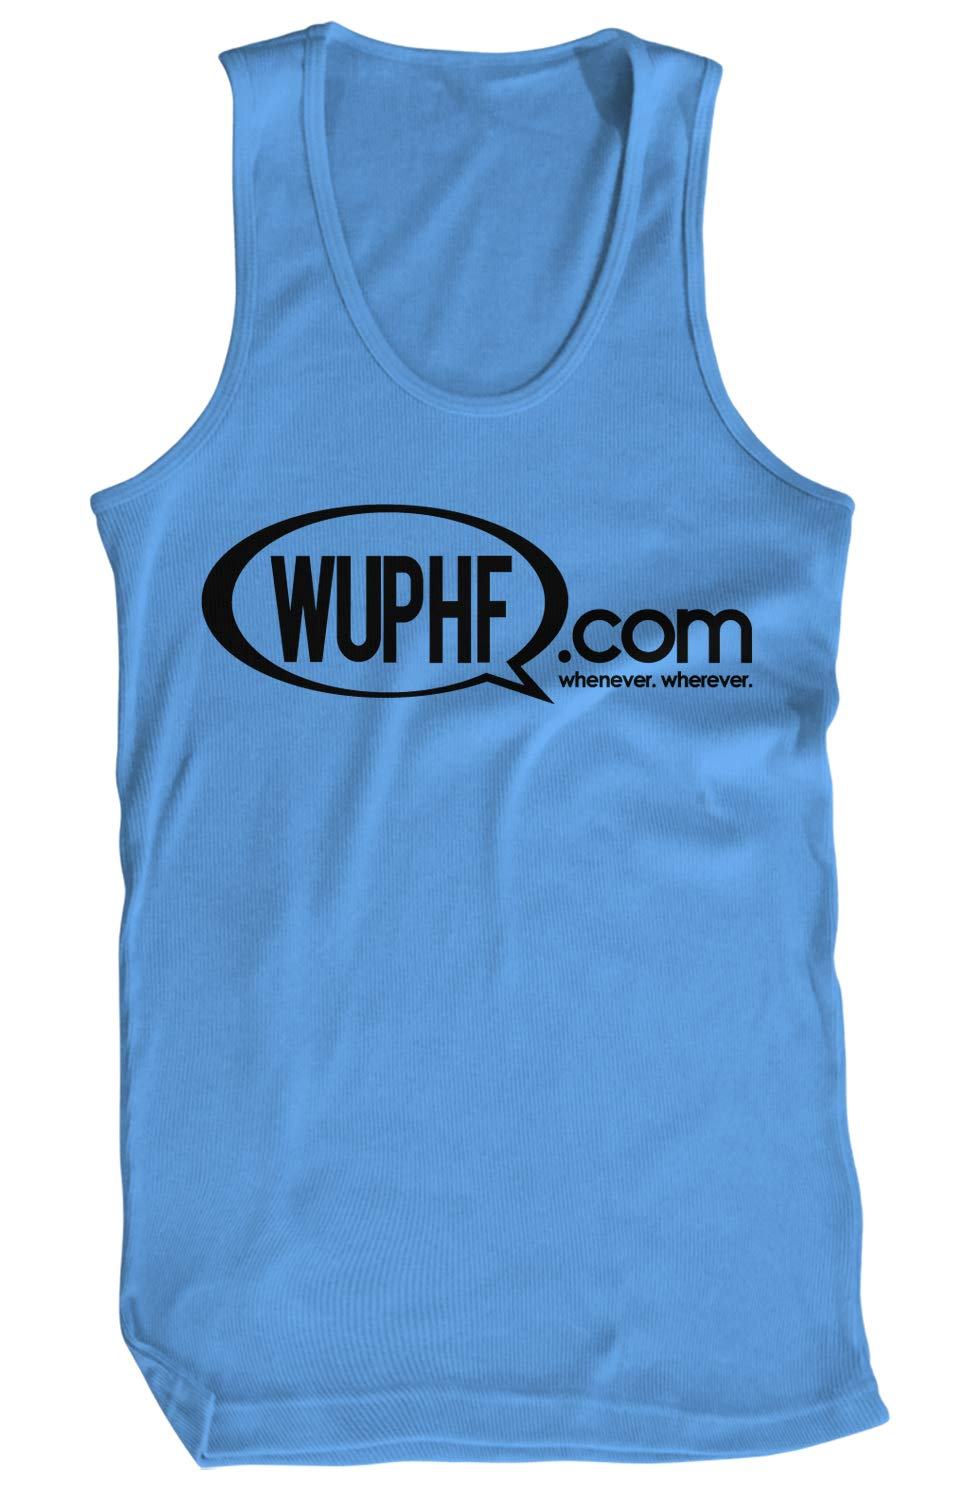 S Wuphf Com Wuphf Whenever Wherever Tank Top Shirts